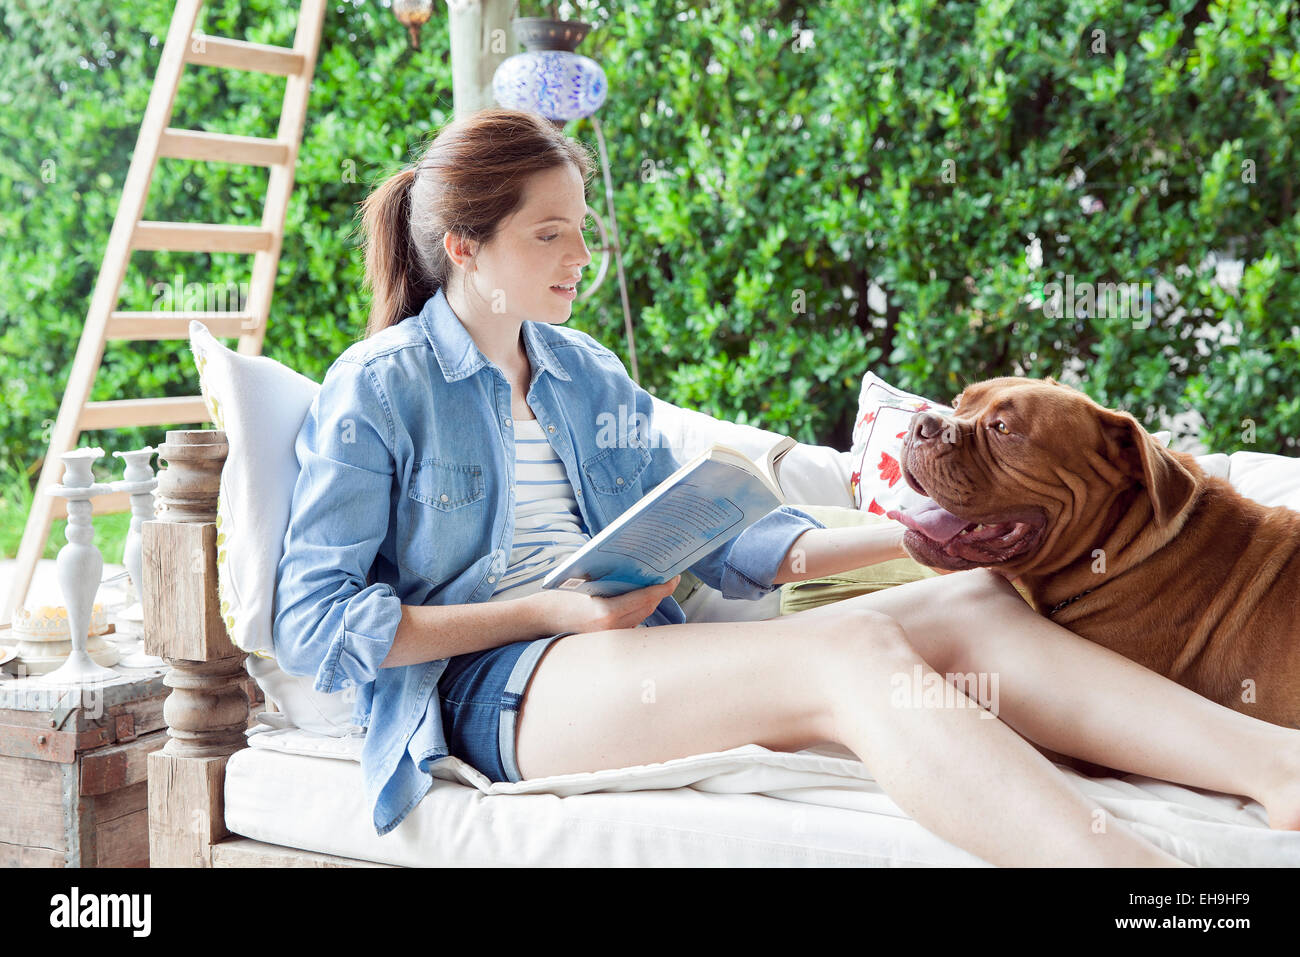 Young woman relaxing outdoors with dog - Stock Image